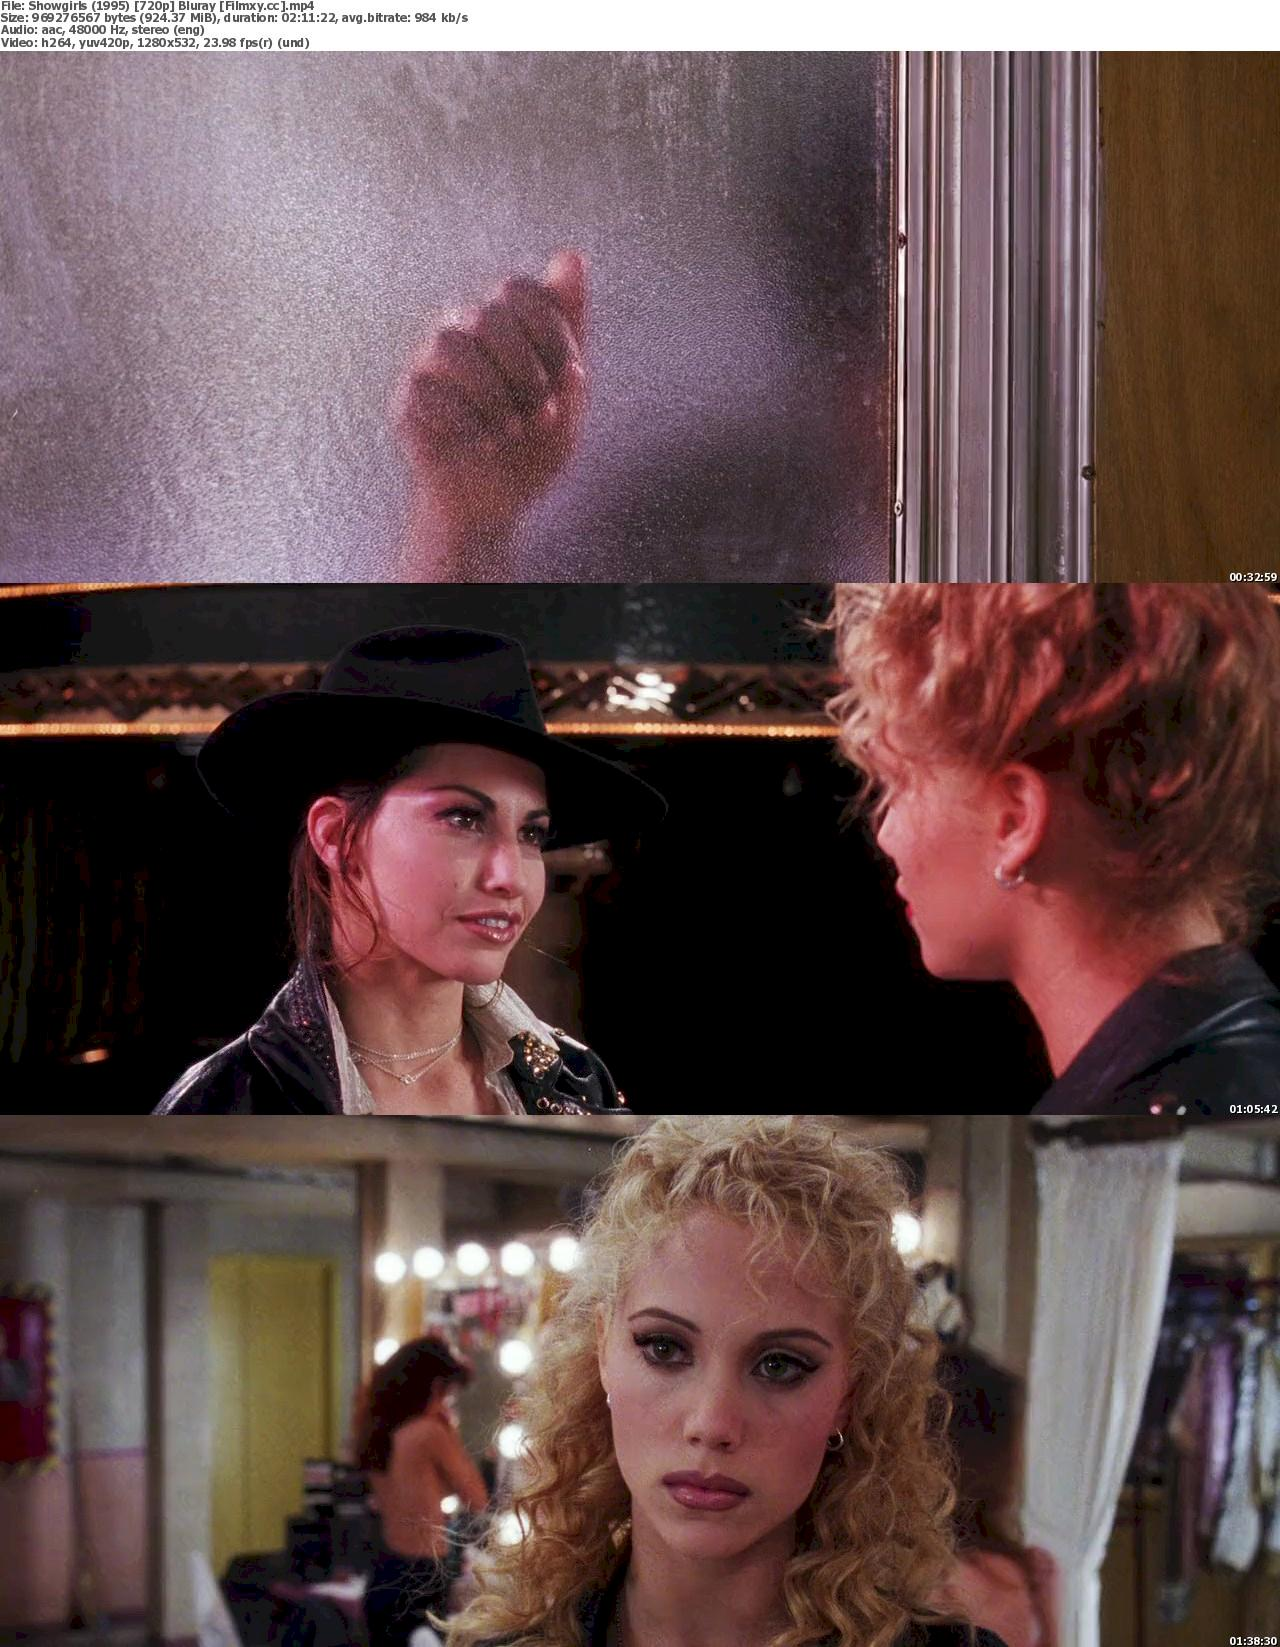 Showgirls (1995) 720p & 1080p Bluray Free Donwload 720p Screenshot